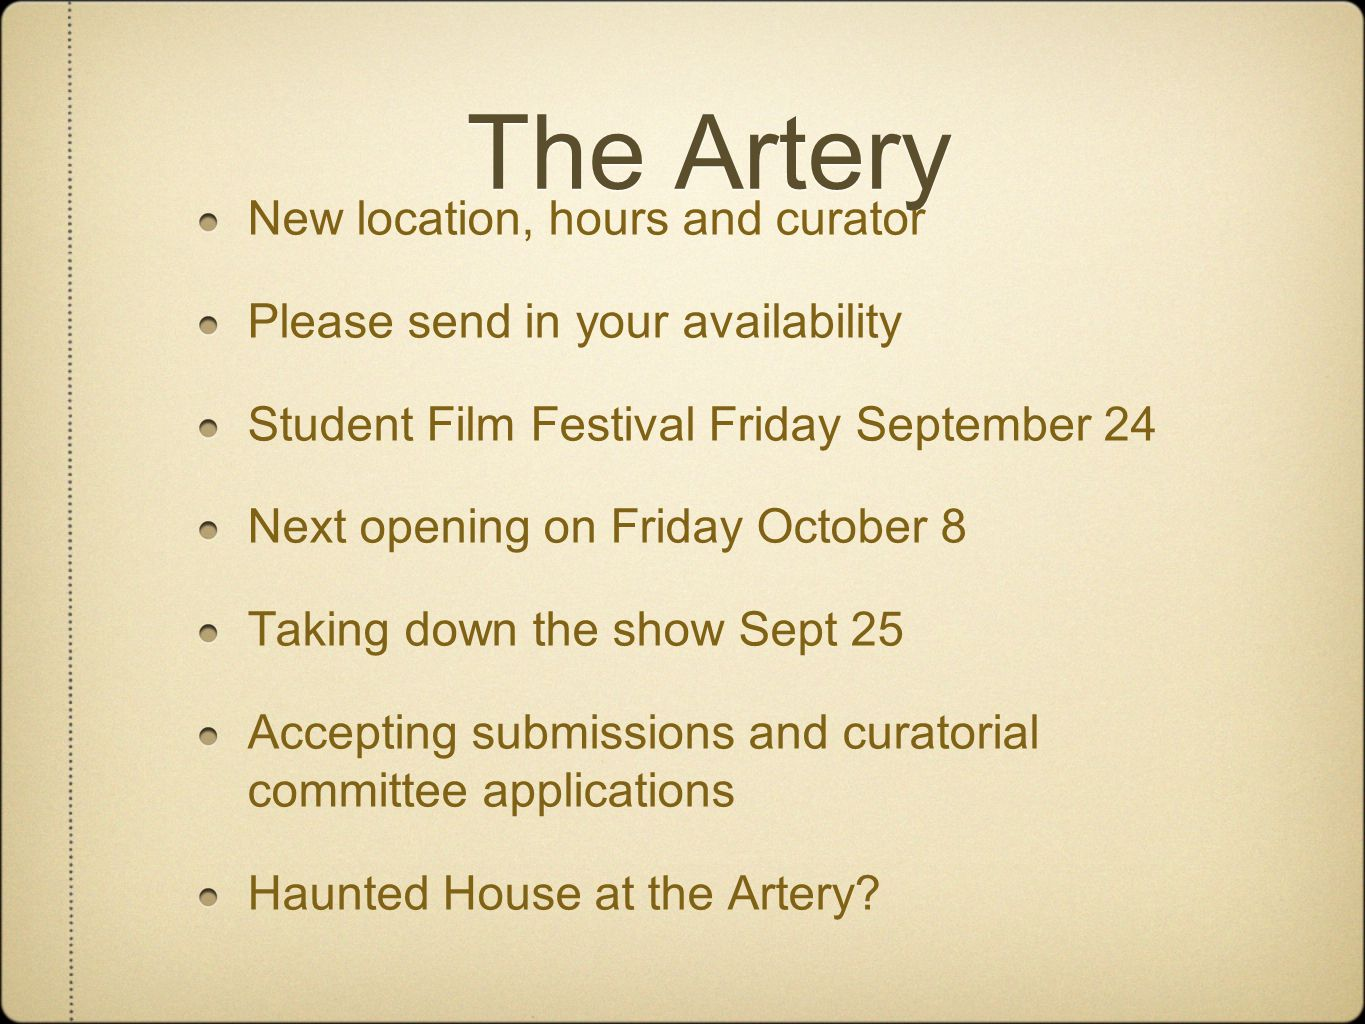 The Artery New location, hours and curator Please send in your availability Student Film Festival Friday September 24 Next opening on Friday October 8 Taking down the show Sept 25 Accepting submissions and curatorial committee applications Haunted House at the Artery